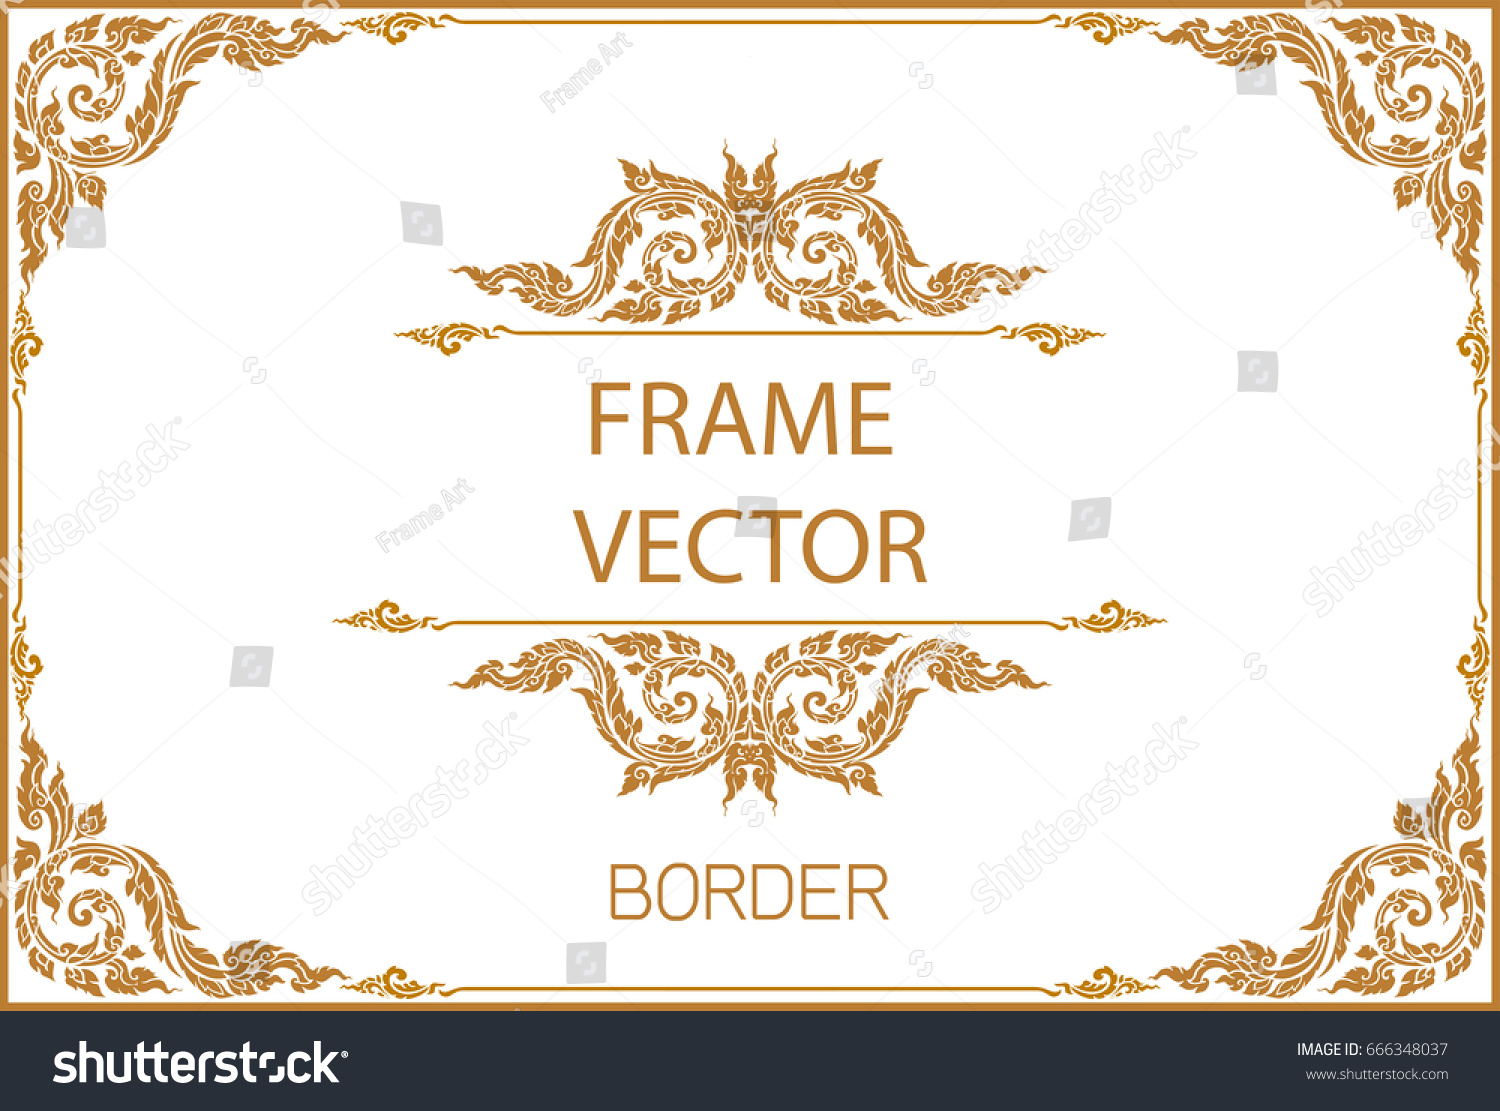 ornate gold frame border. Beautiful Ornate With Ornate Gold Frame Border